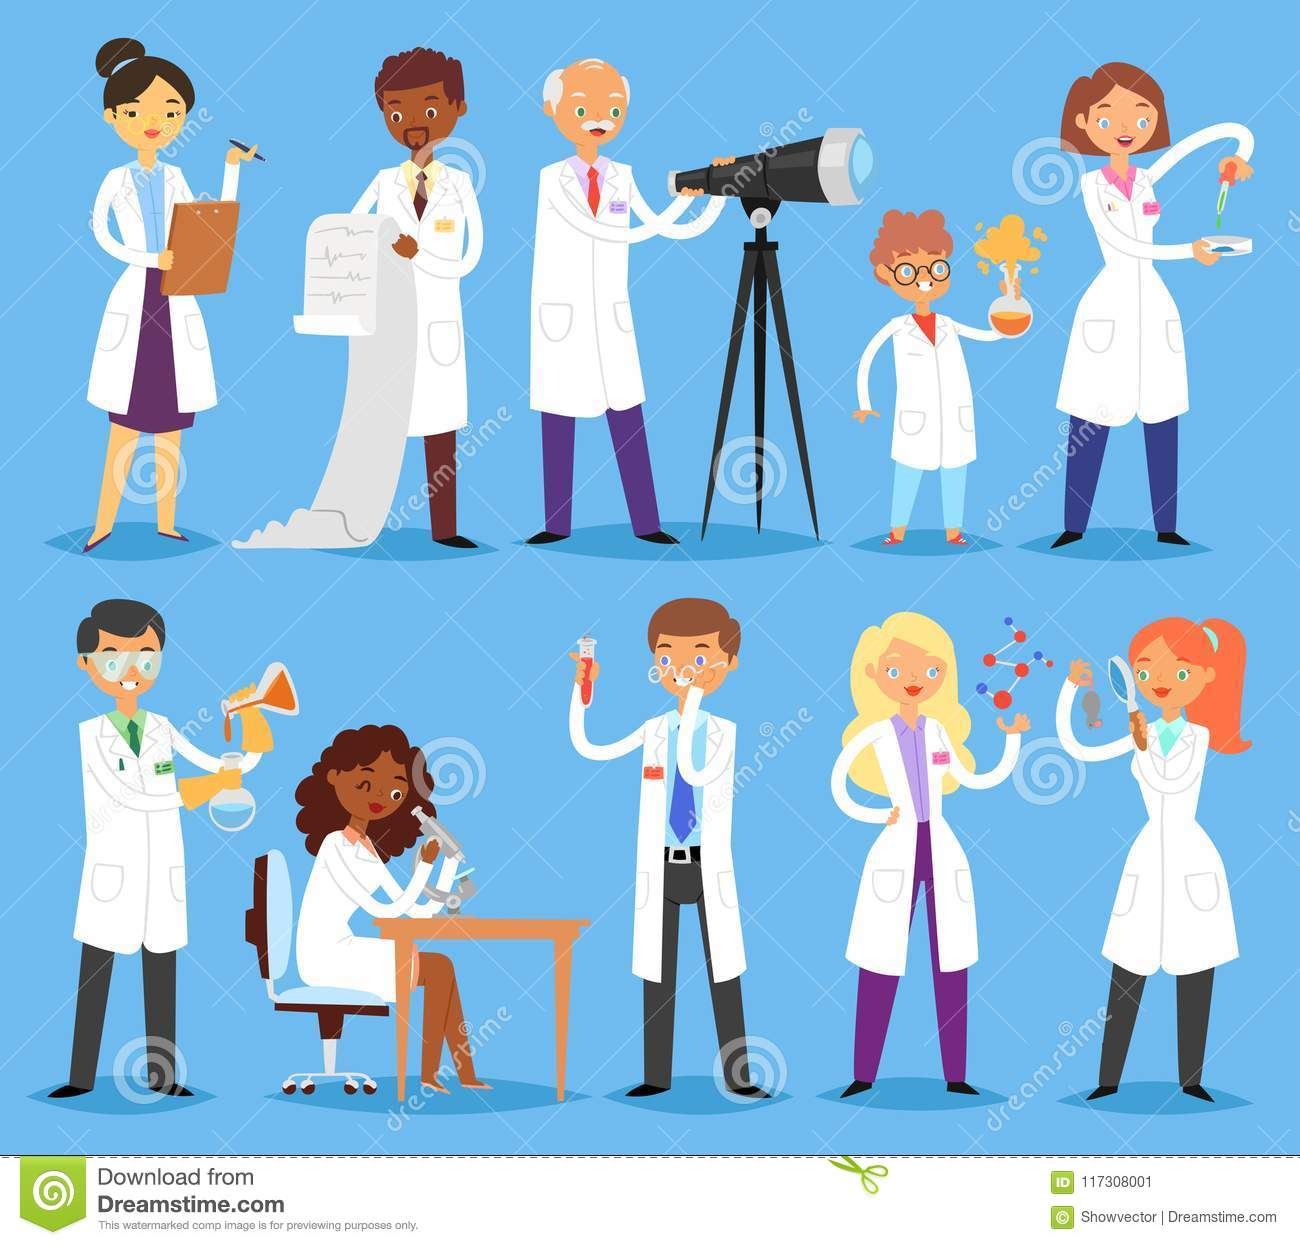 scientist vector professional people character chemist or doctor researching medical experiment in scientific laboratory stock vector illustration of clinic microscope 117308001 https www dreamstime com scientist vector professional people character chemist doctor researching medical experiment scientific laboratory scientist image117308001